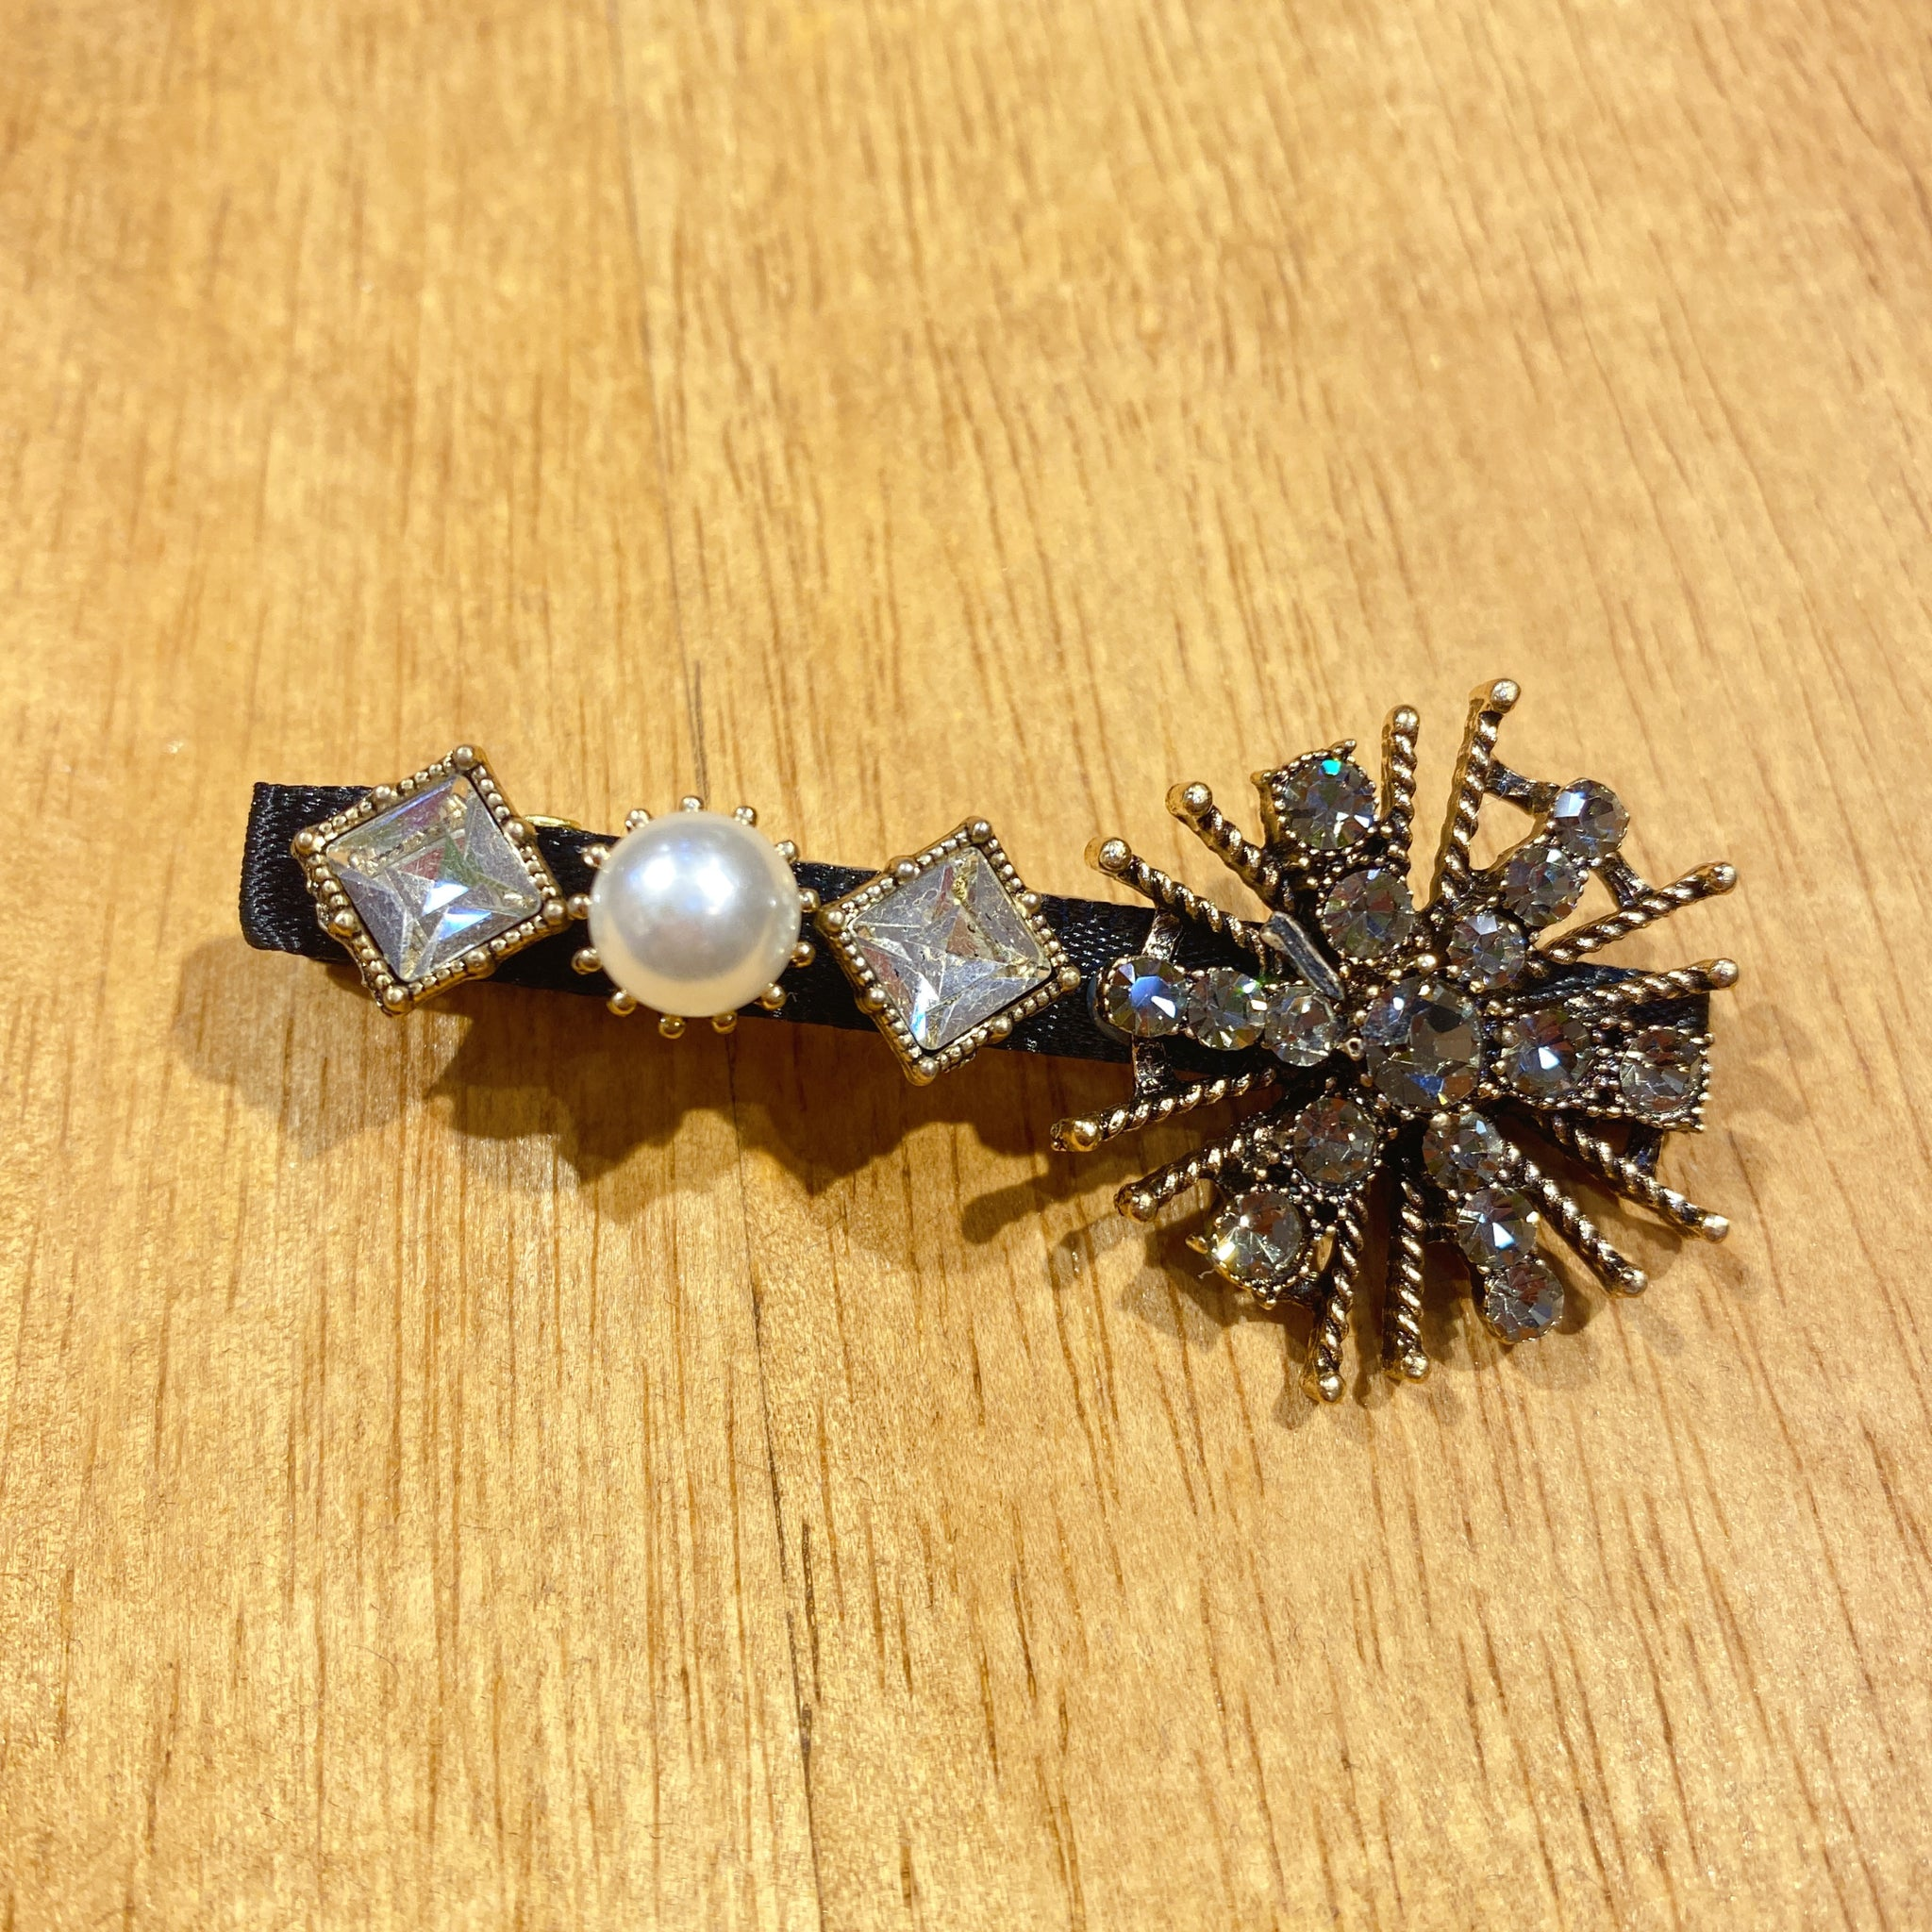 1405HA003 Pearls and Crystals Embellished Barrette